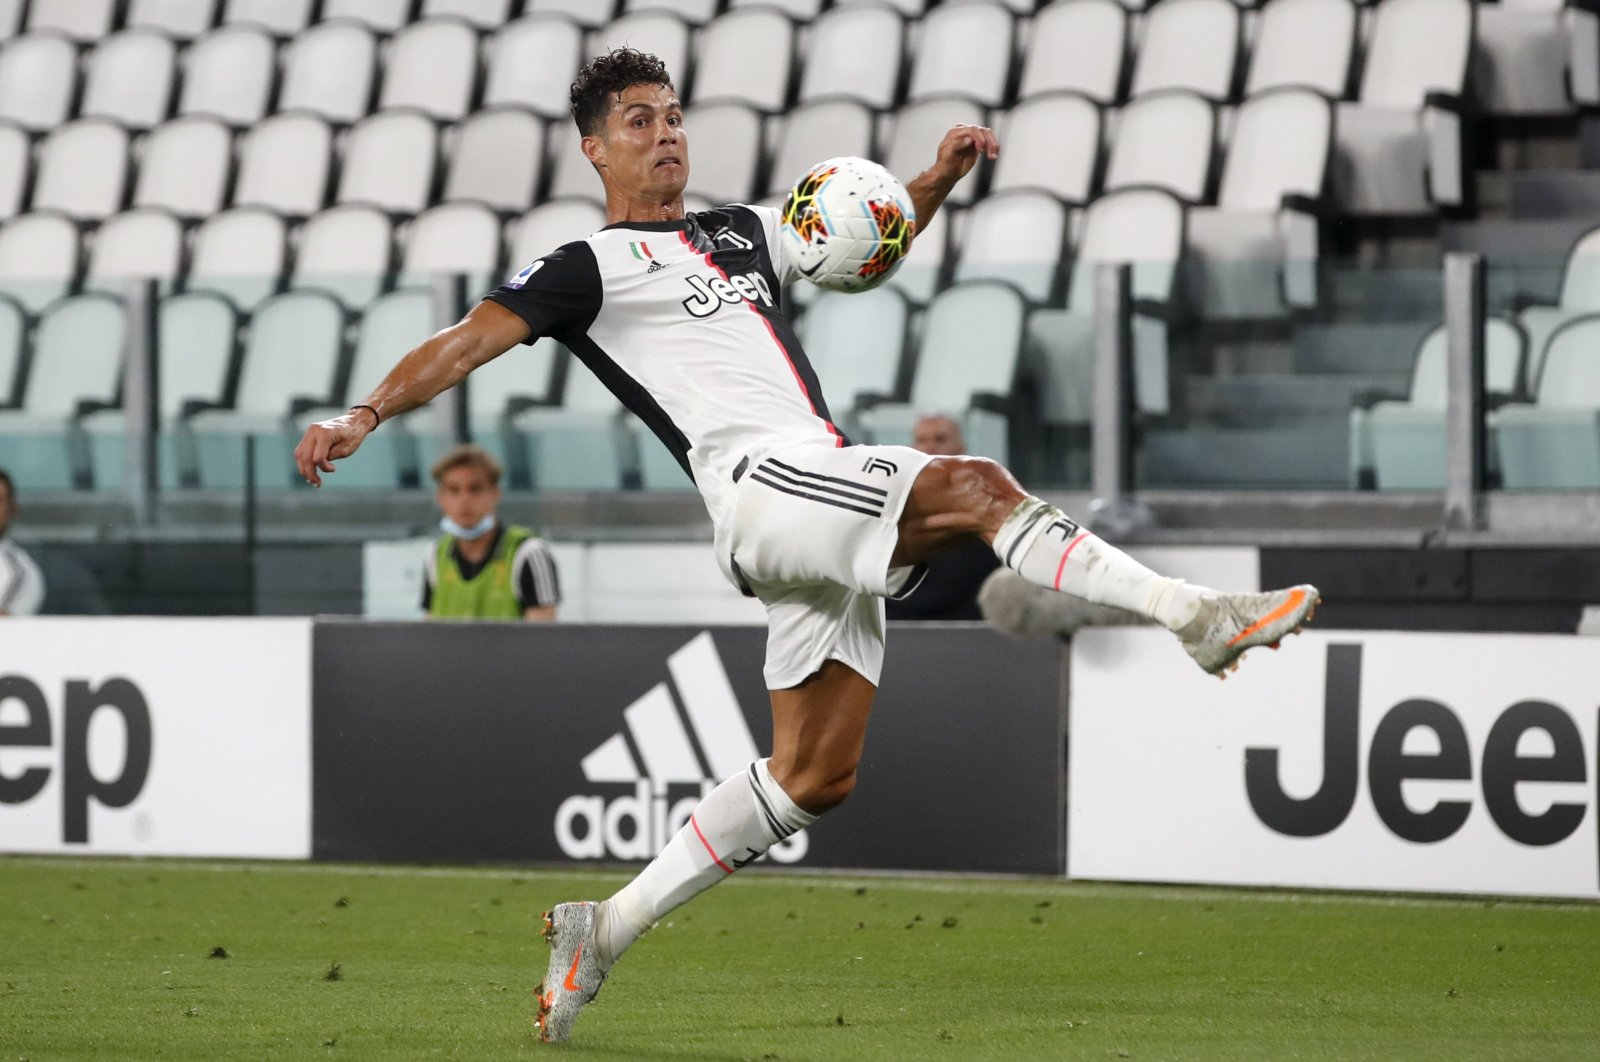 Cristiano Ronaldo tries to control the ball in a match against Sampdoria, in Turin, Italy, July 26, 2020. (AP Photo)